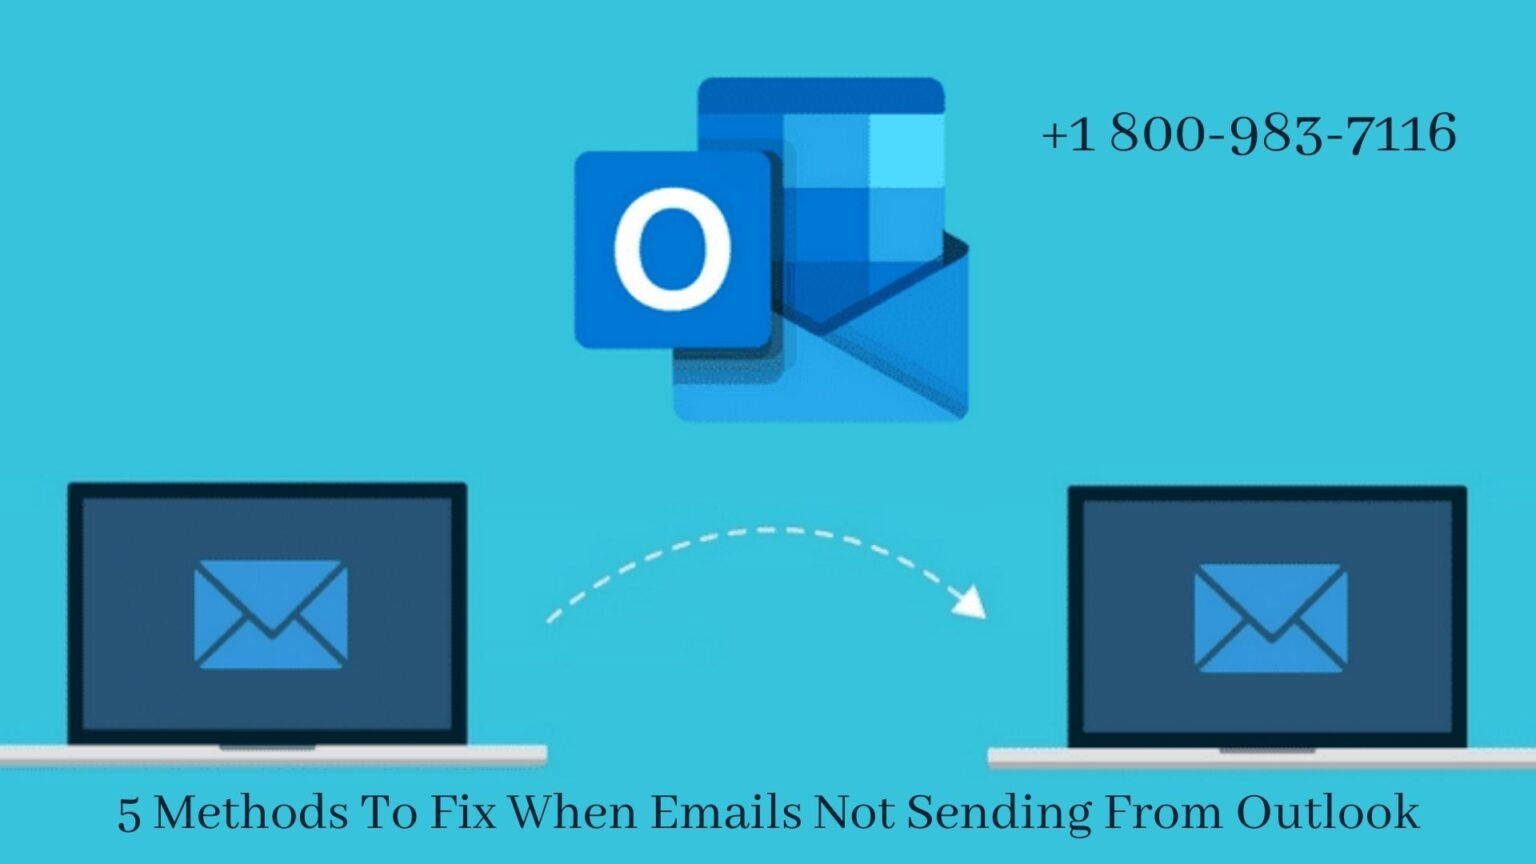 Fix why Emails Not Sending From Outlook | Call 18009837116 to fix it